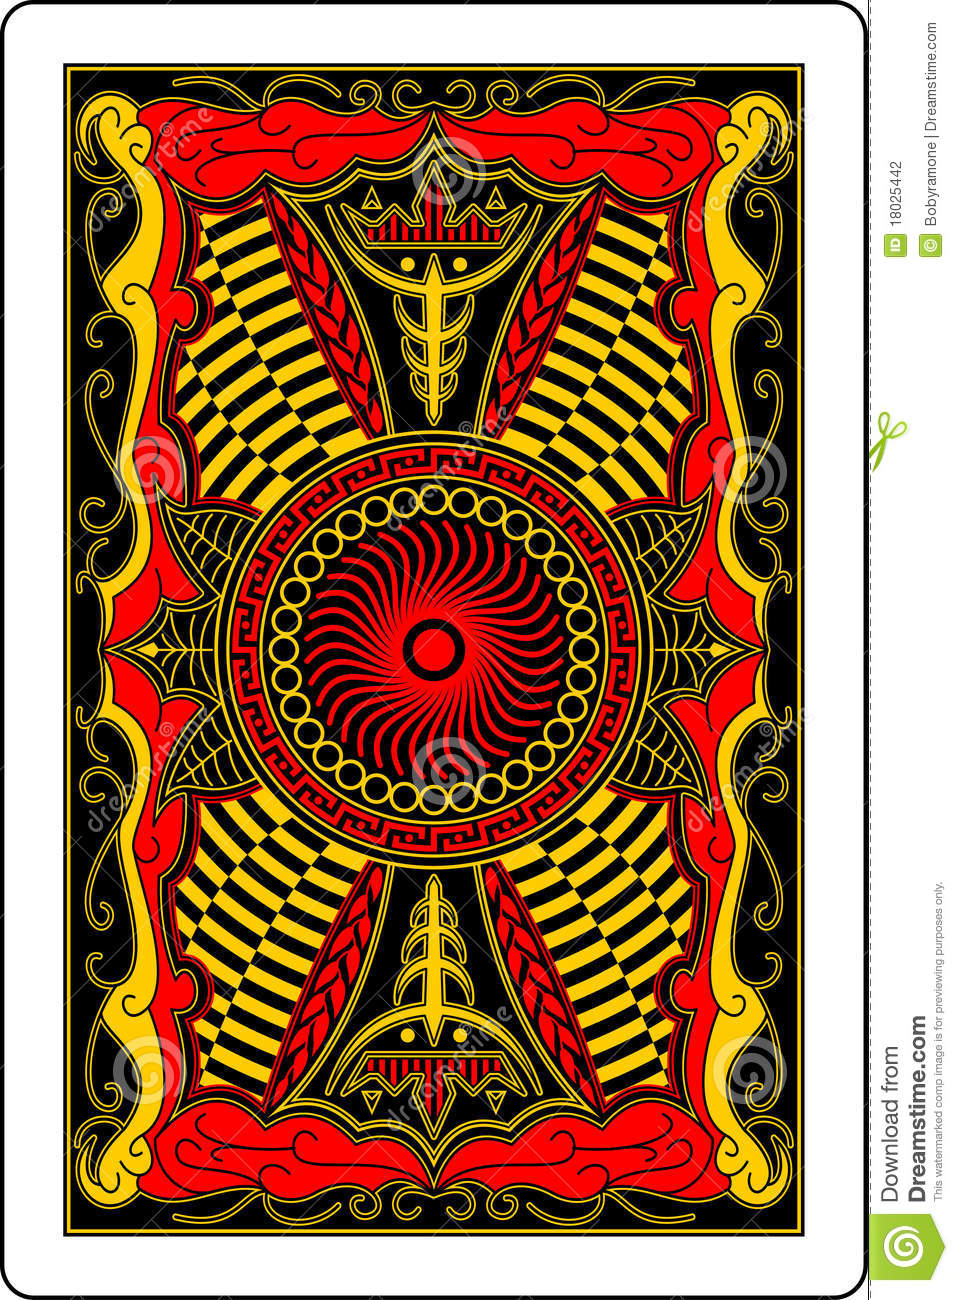 playing card back side 60x90 mm stock photography image